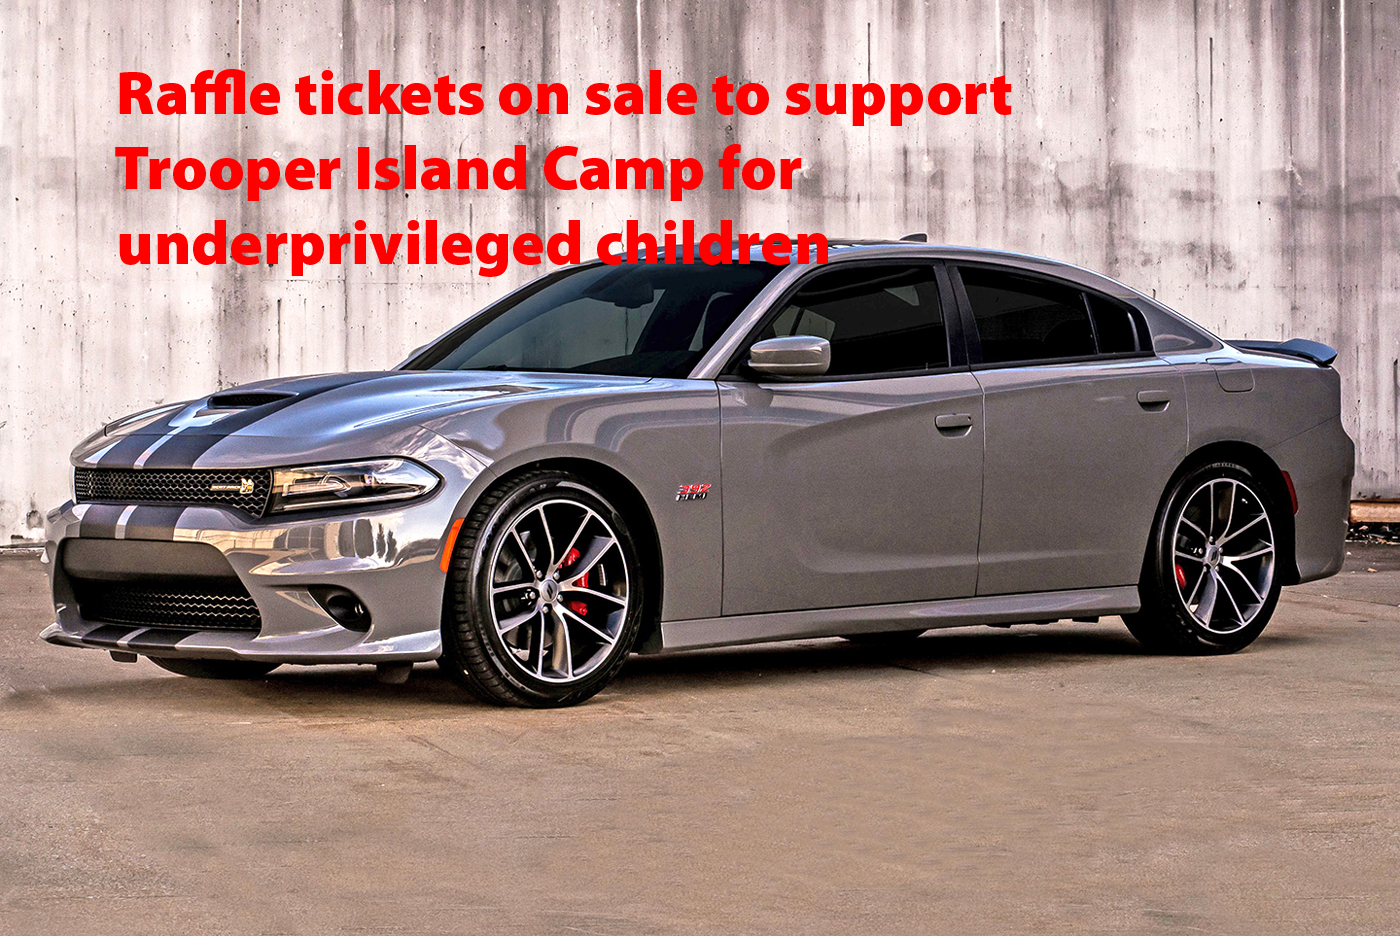 Dodge dodge charger rt horsepower : KSP Selling Raffle Tickets For Dodge Charger R/T 392 | The Lake News